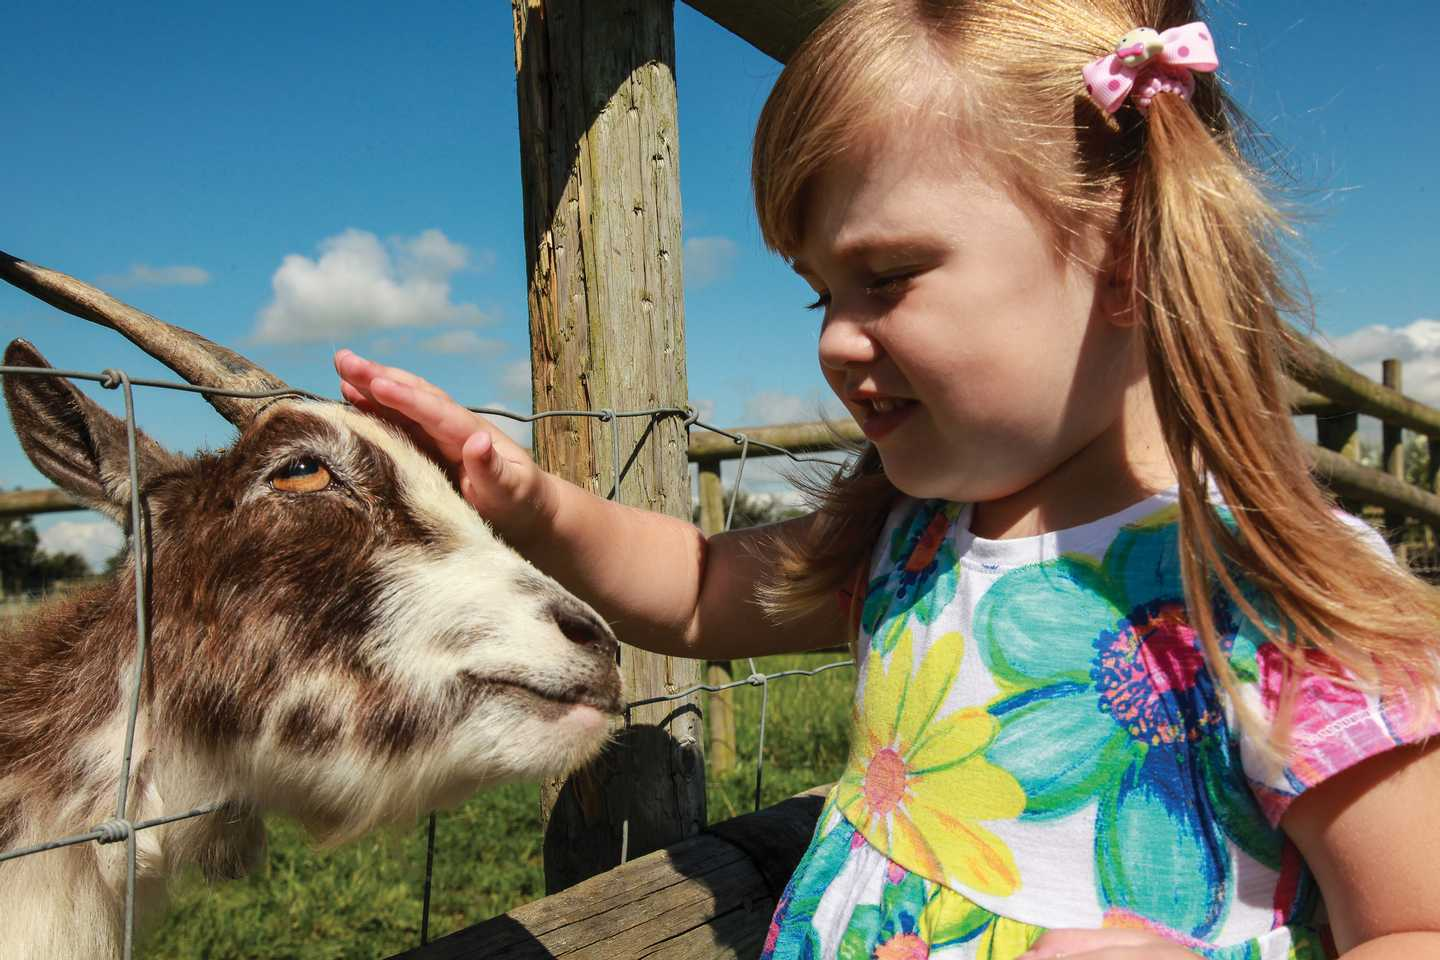 A little girl petting a goat